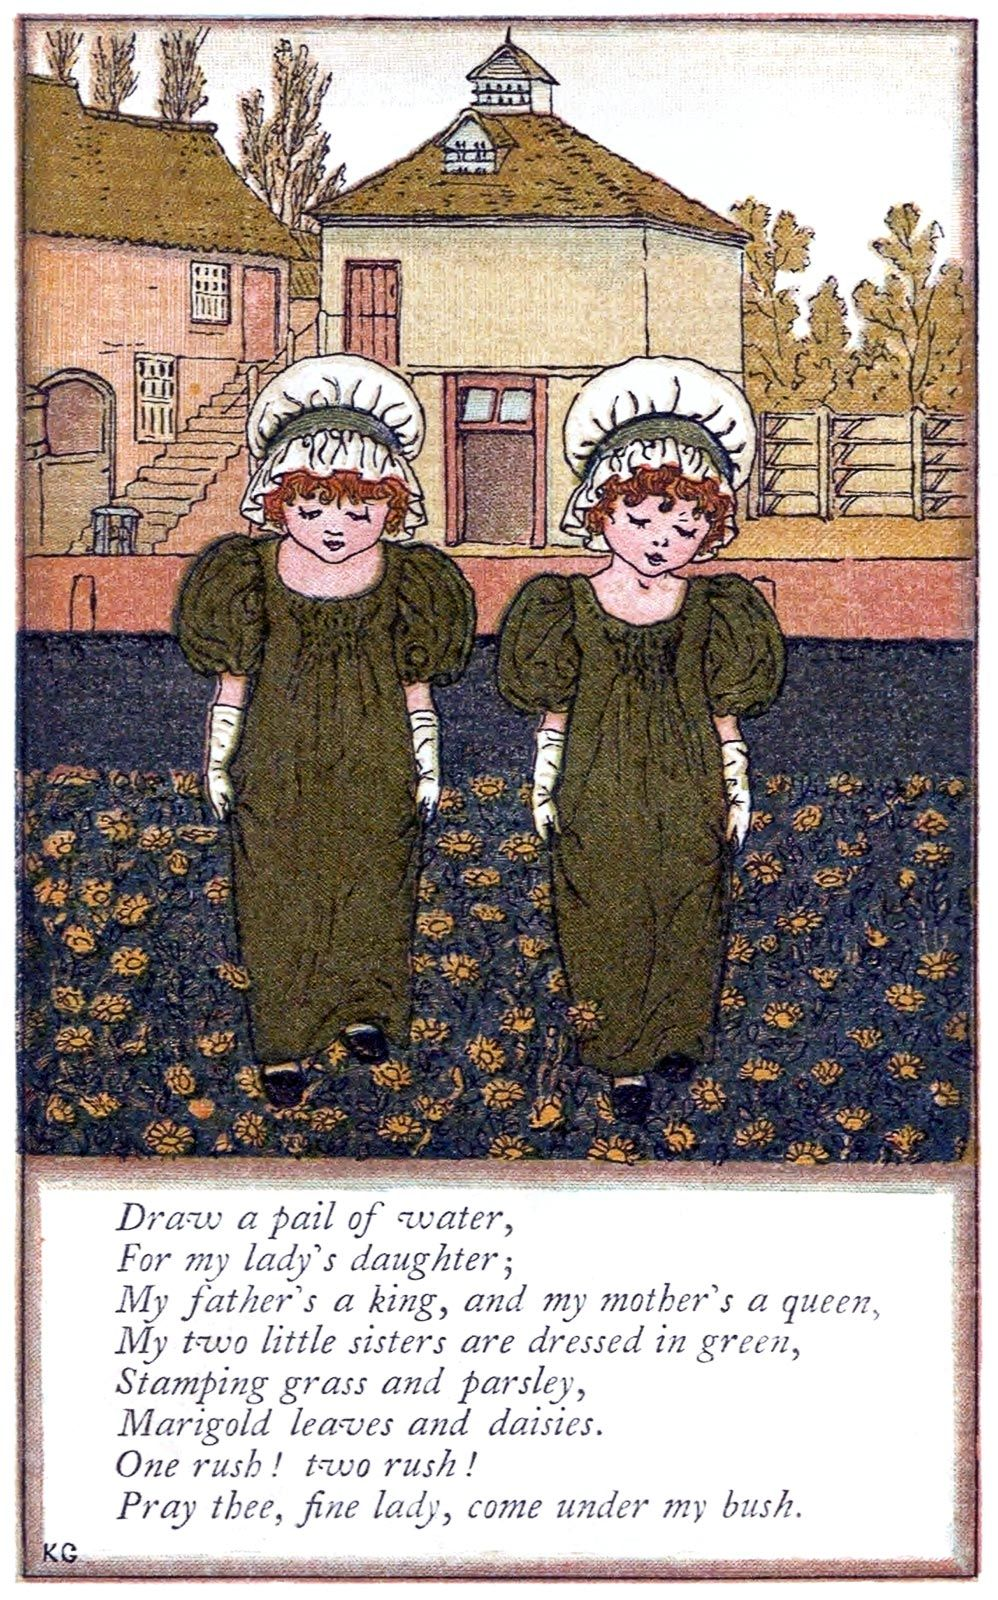 Pray thee, fine lady, come under my bush.  Kate Greenaway, from Mother Goose, London, New York, 1881.  *